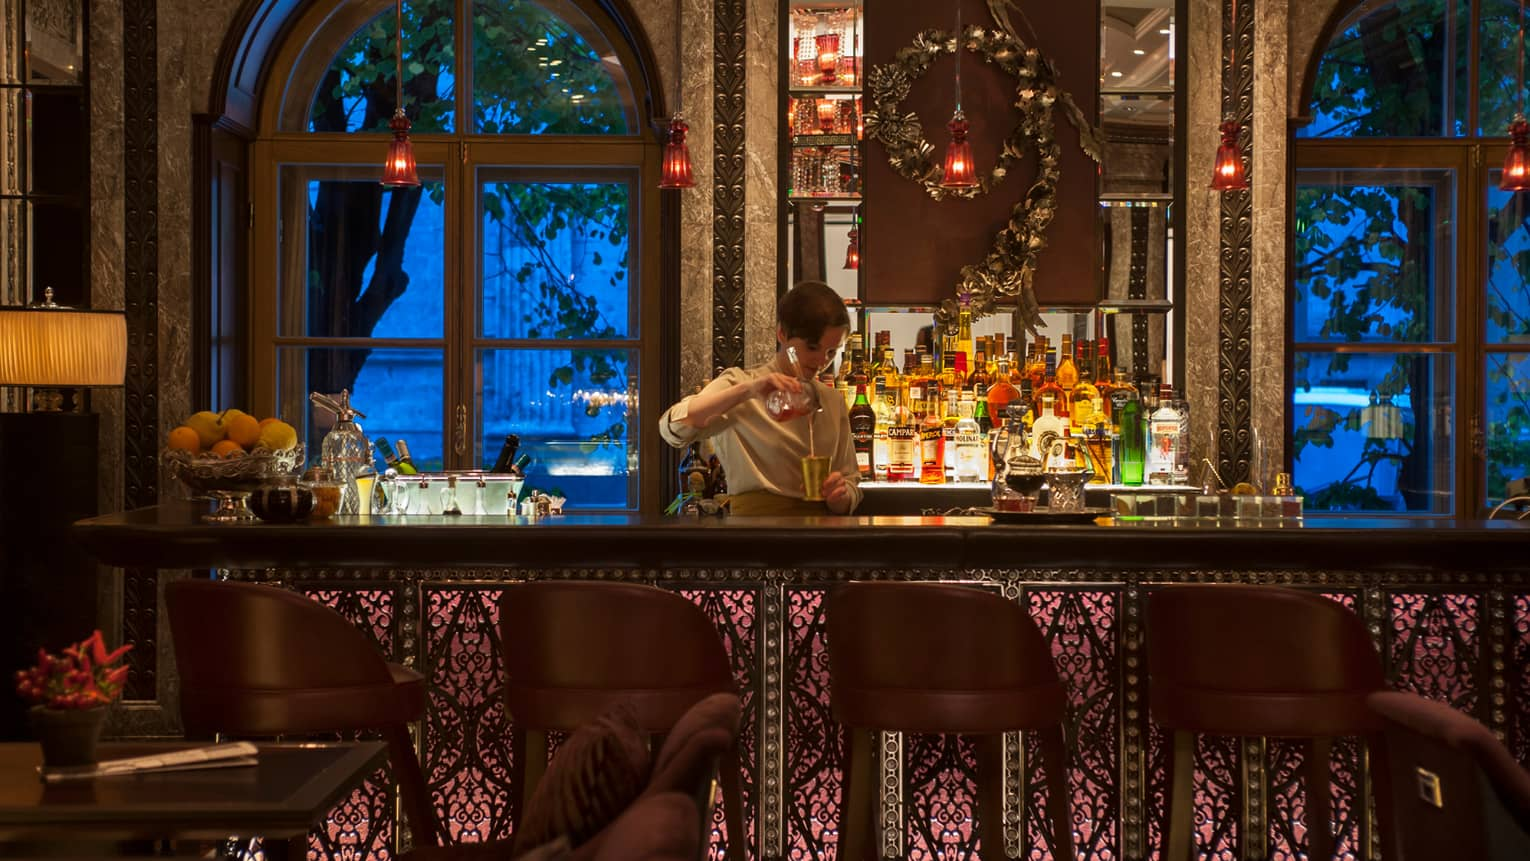 Percorso bartender mixes cocktails at dark bar under small red lights, by arched windows